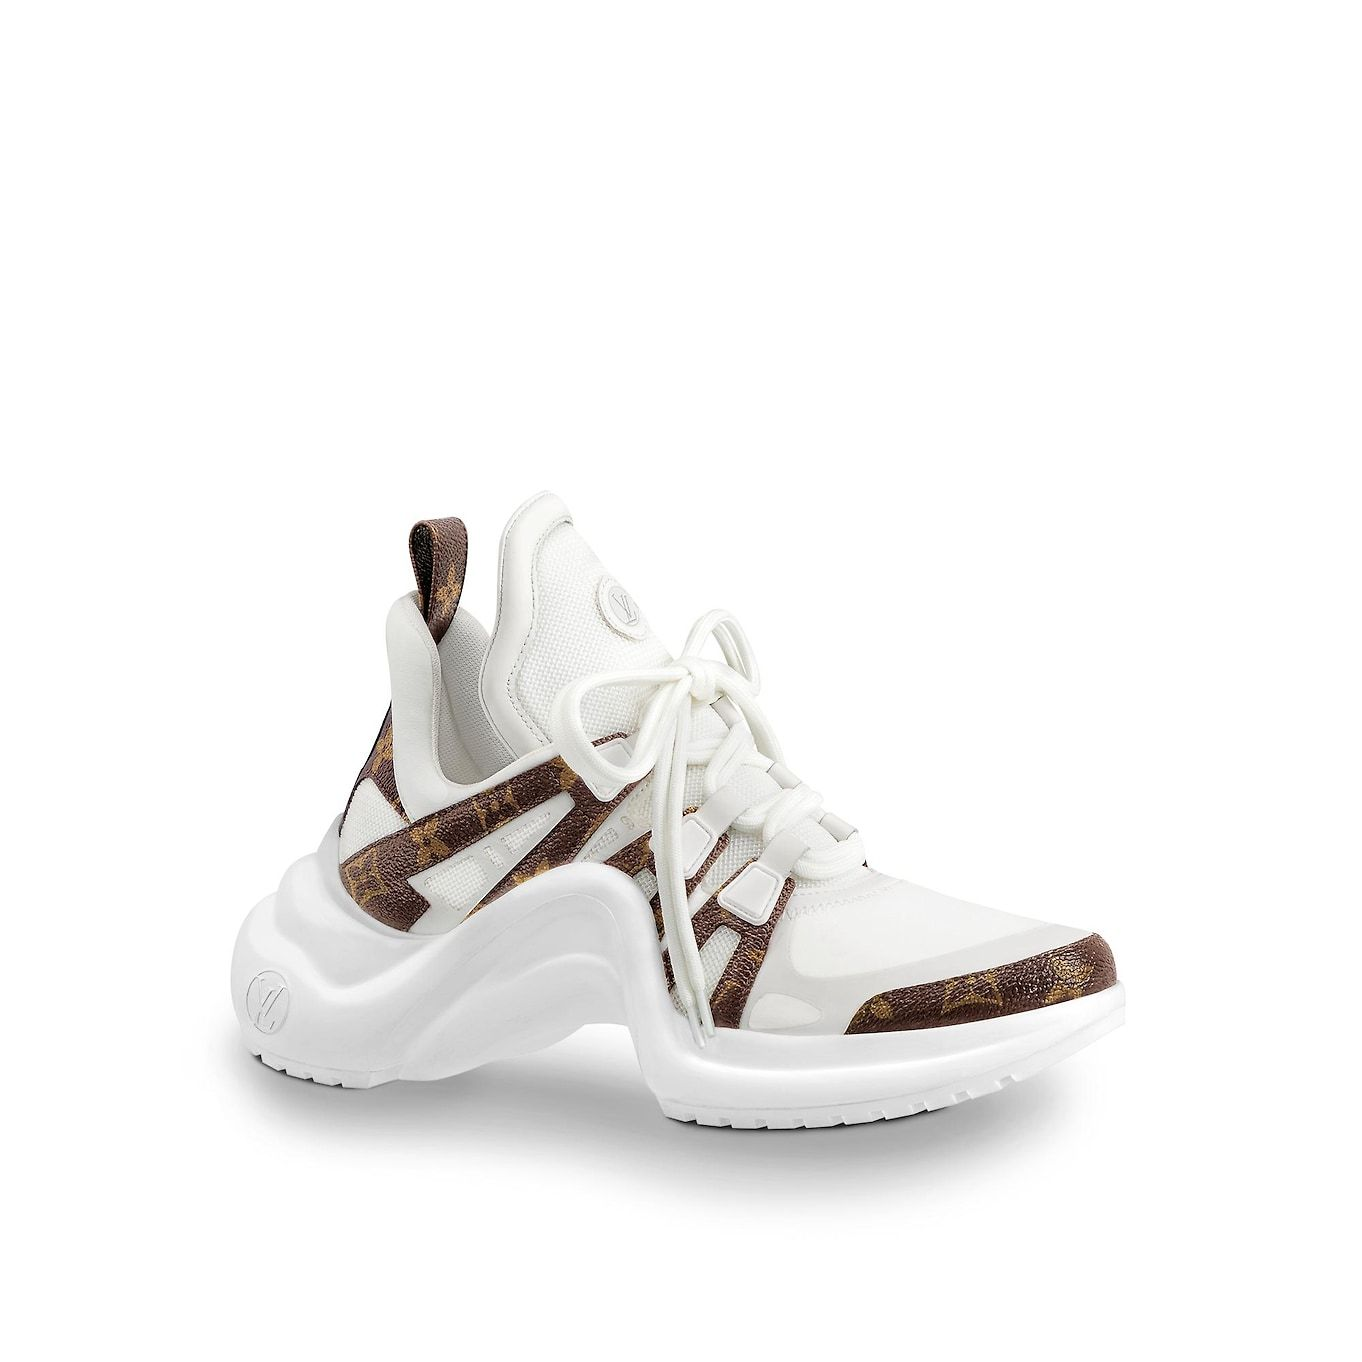 26df731aac0c SHOES ALL COLLECTIONS LV Archlight Sneaker